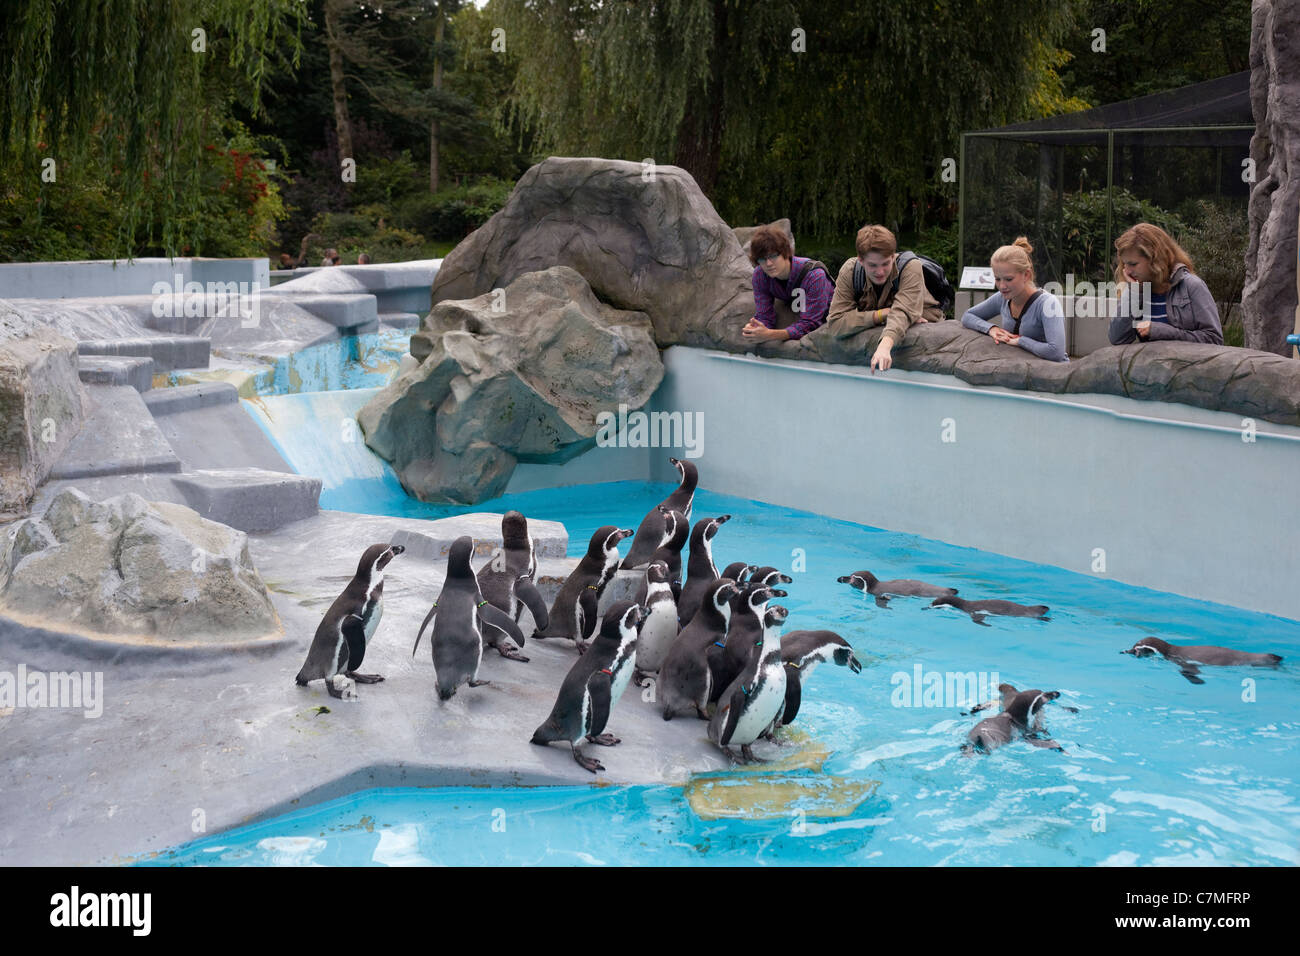 Humbolt's or Peruvian Penguins (Spheniscus humboltii). Exhibit and Enclosure design, students studying, Koln - Stock Image